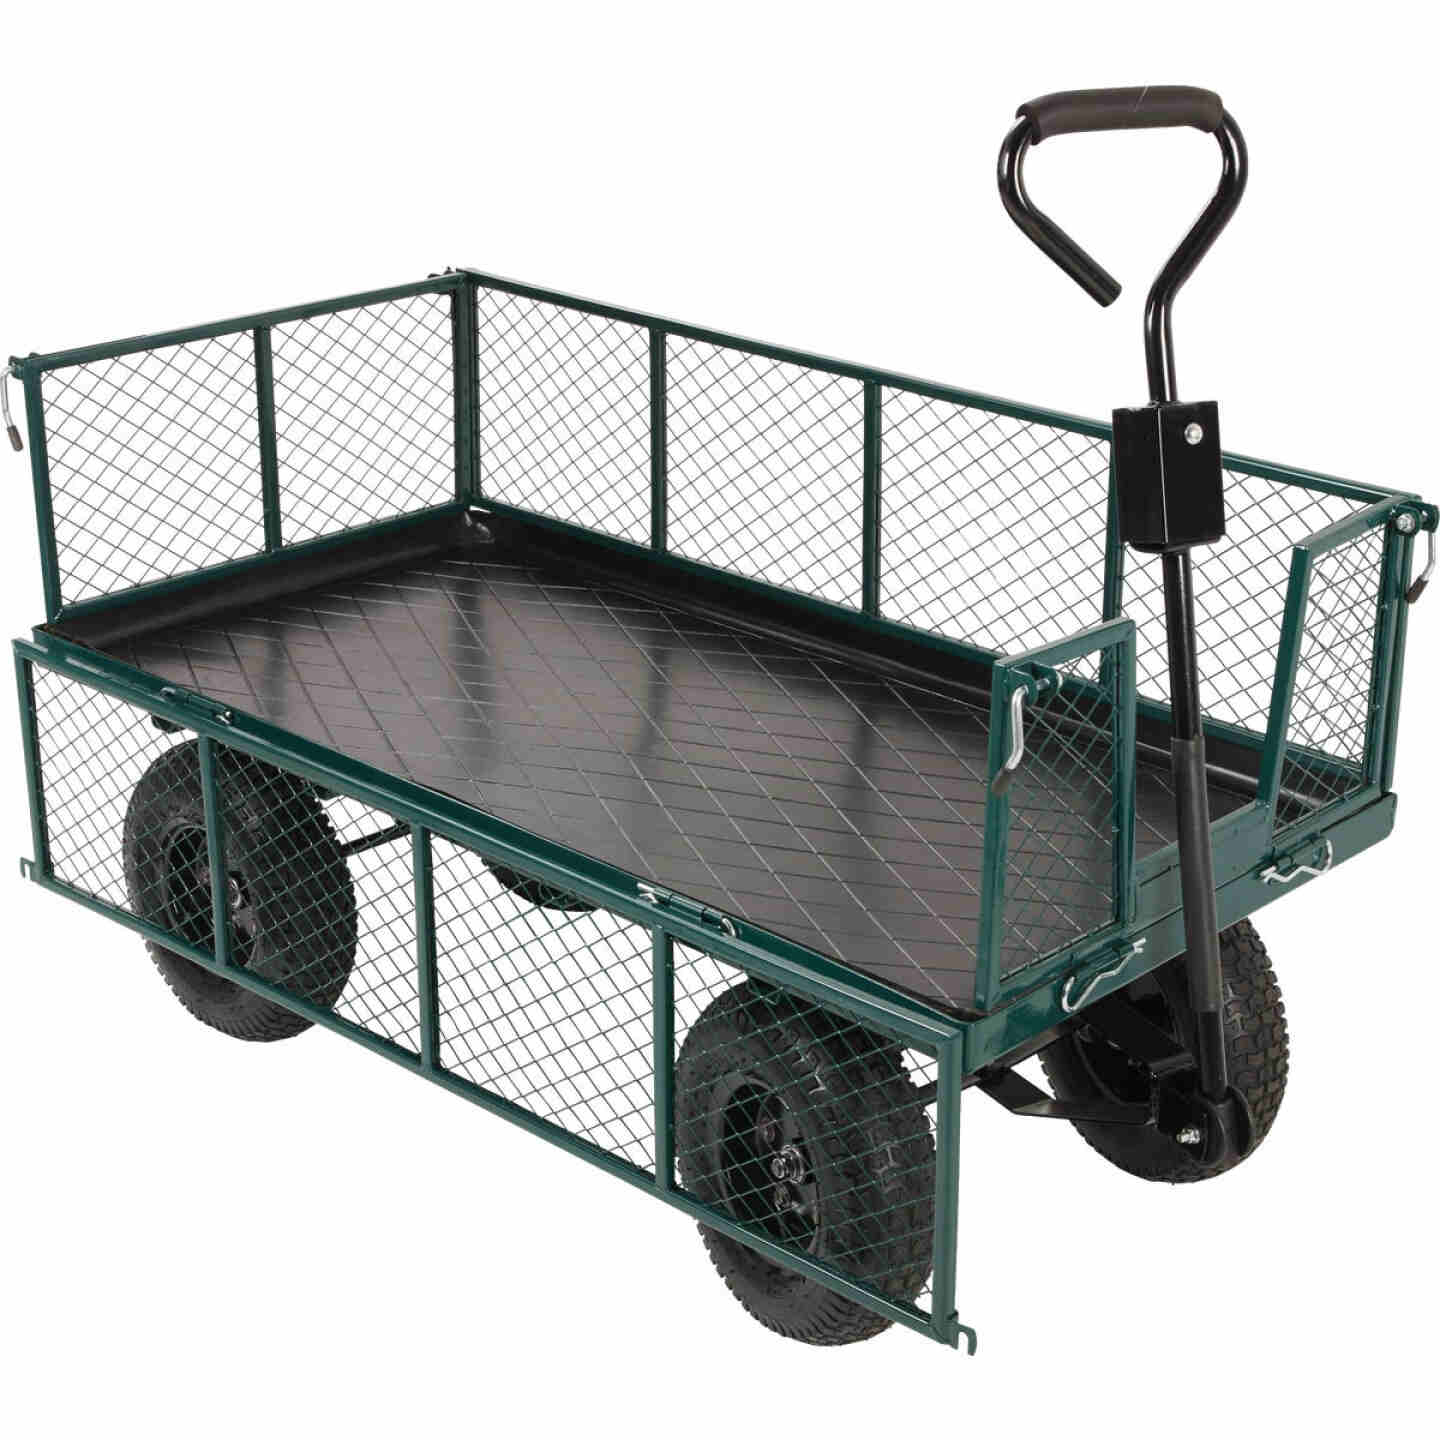 Best Garden 1000 Lb. Steel Garden Cart with Collapsible Sides Image 5